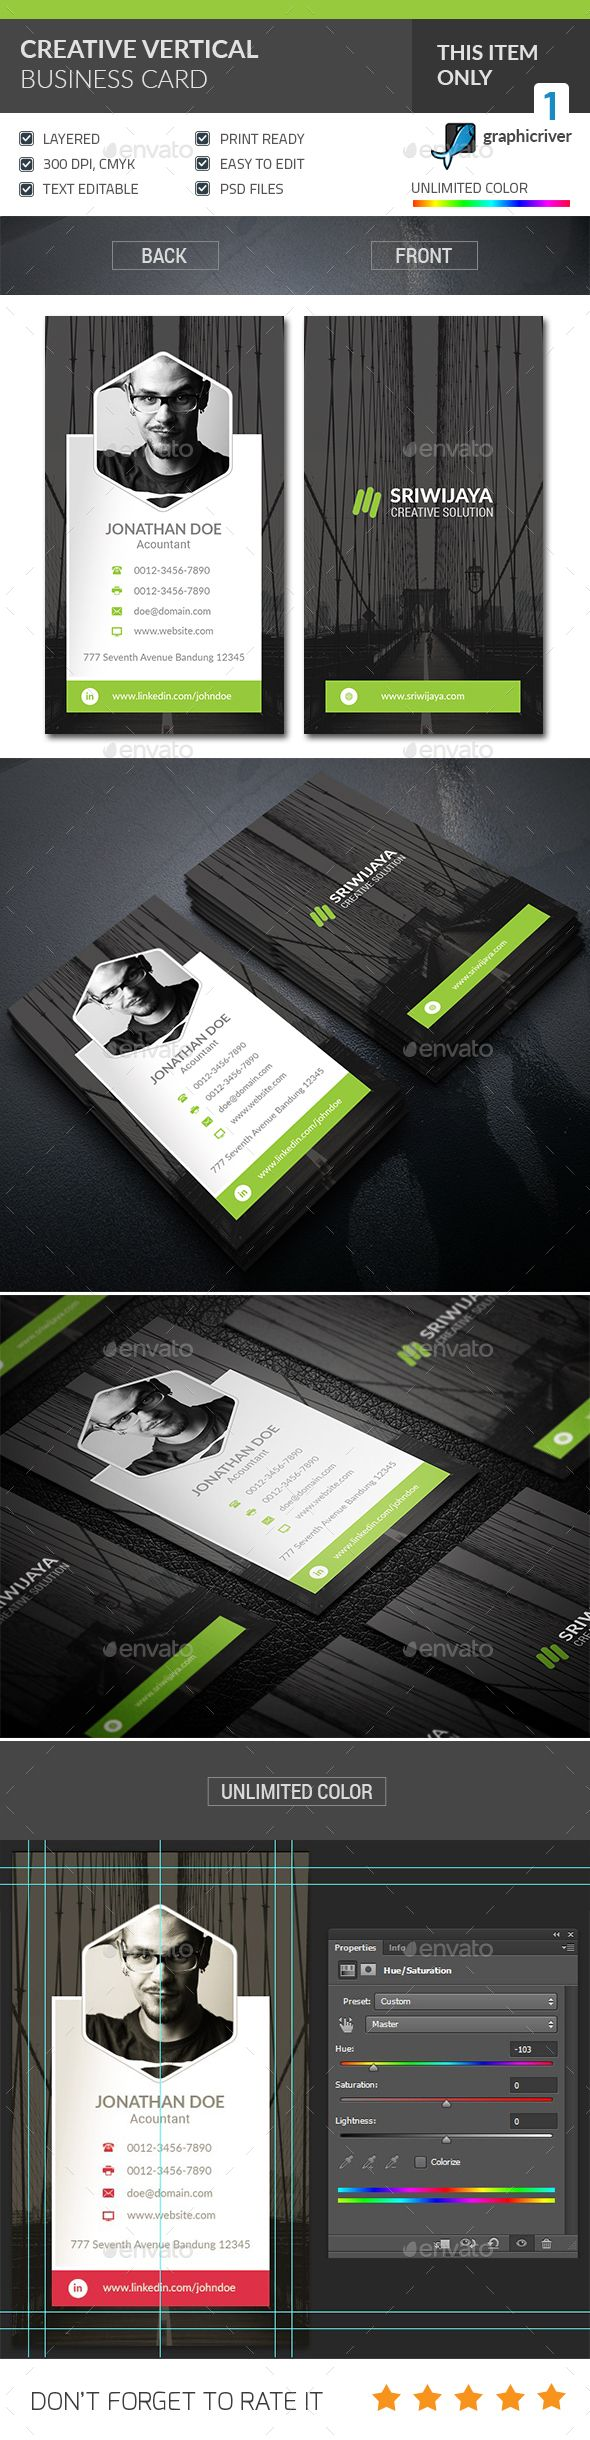 Creative Vertical Business Card Template PSD. Download here: http://graphicriver.net/item/creative-vertical-business-card-/16829762?ref=ksioks